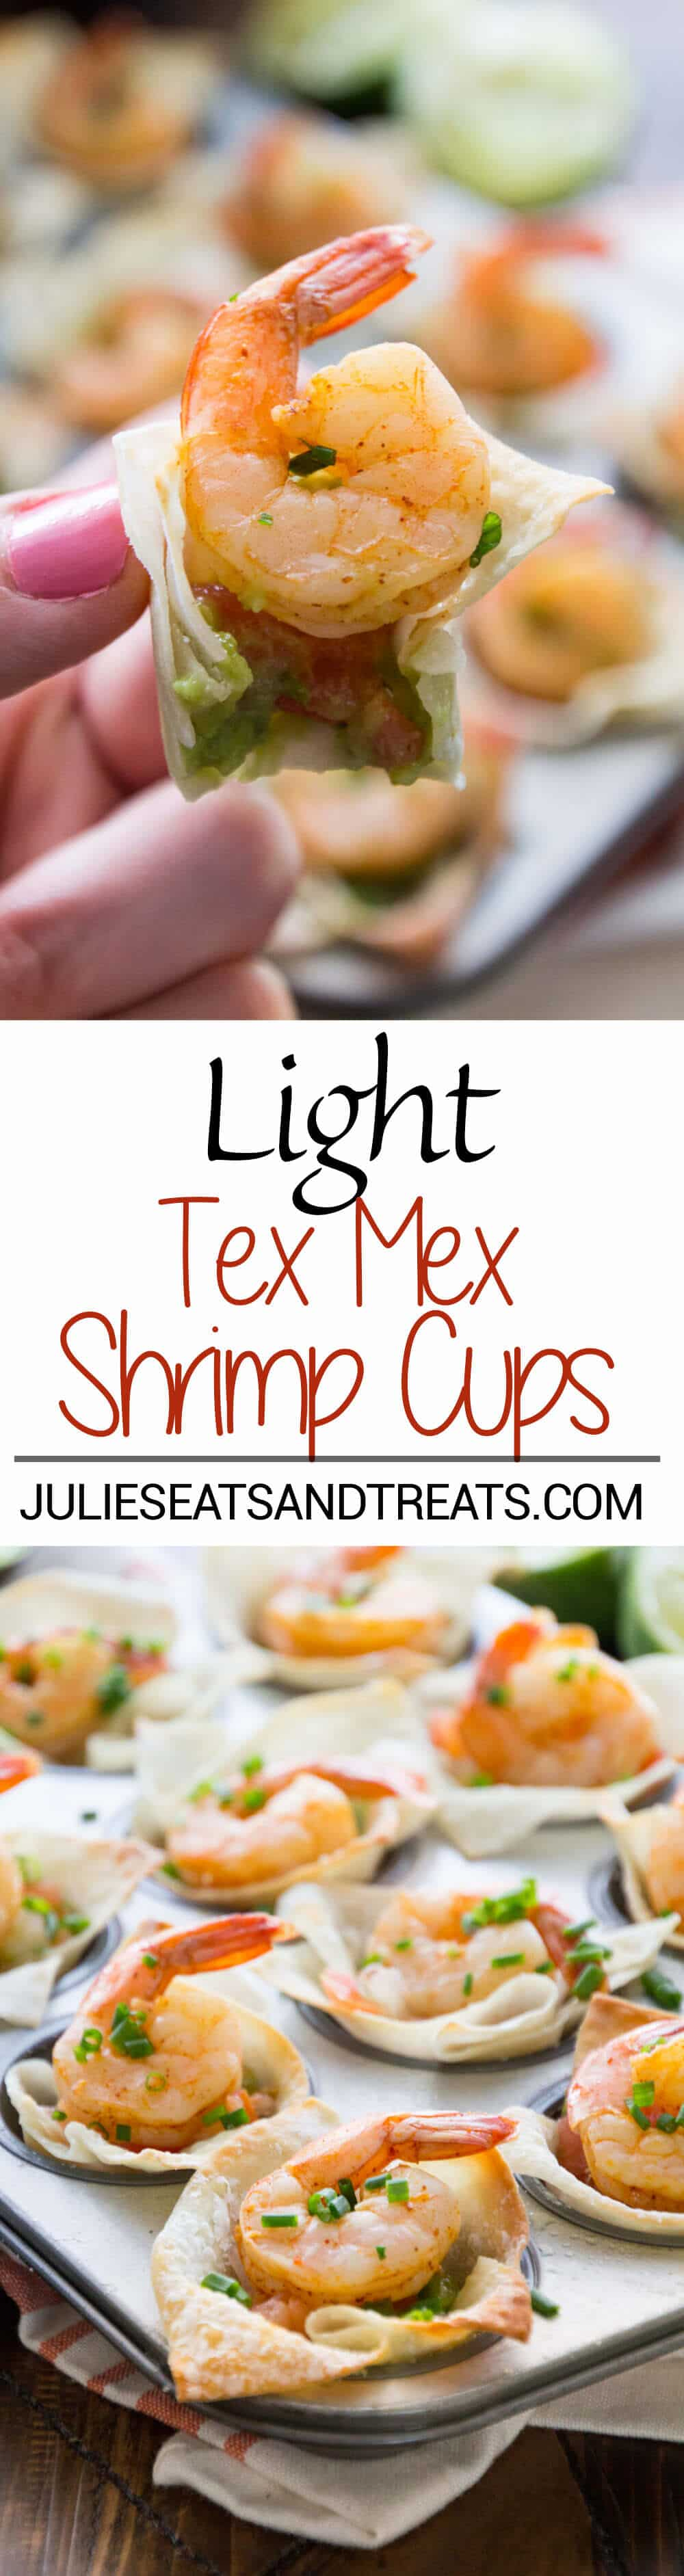 Light Tex Mex Shrimp Wonton Cups Recipe ~ Perfect Small Bite Appetizers! Crunchy Wonton Shells Stuffed with Pico de Gallo, Guacamole, and Seasoned Shrimp! Plus, it's a Light Appetizer So You Won't Feel Guilty!